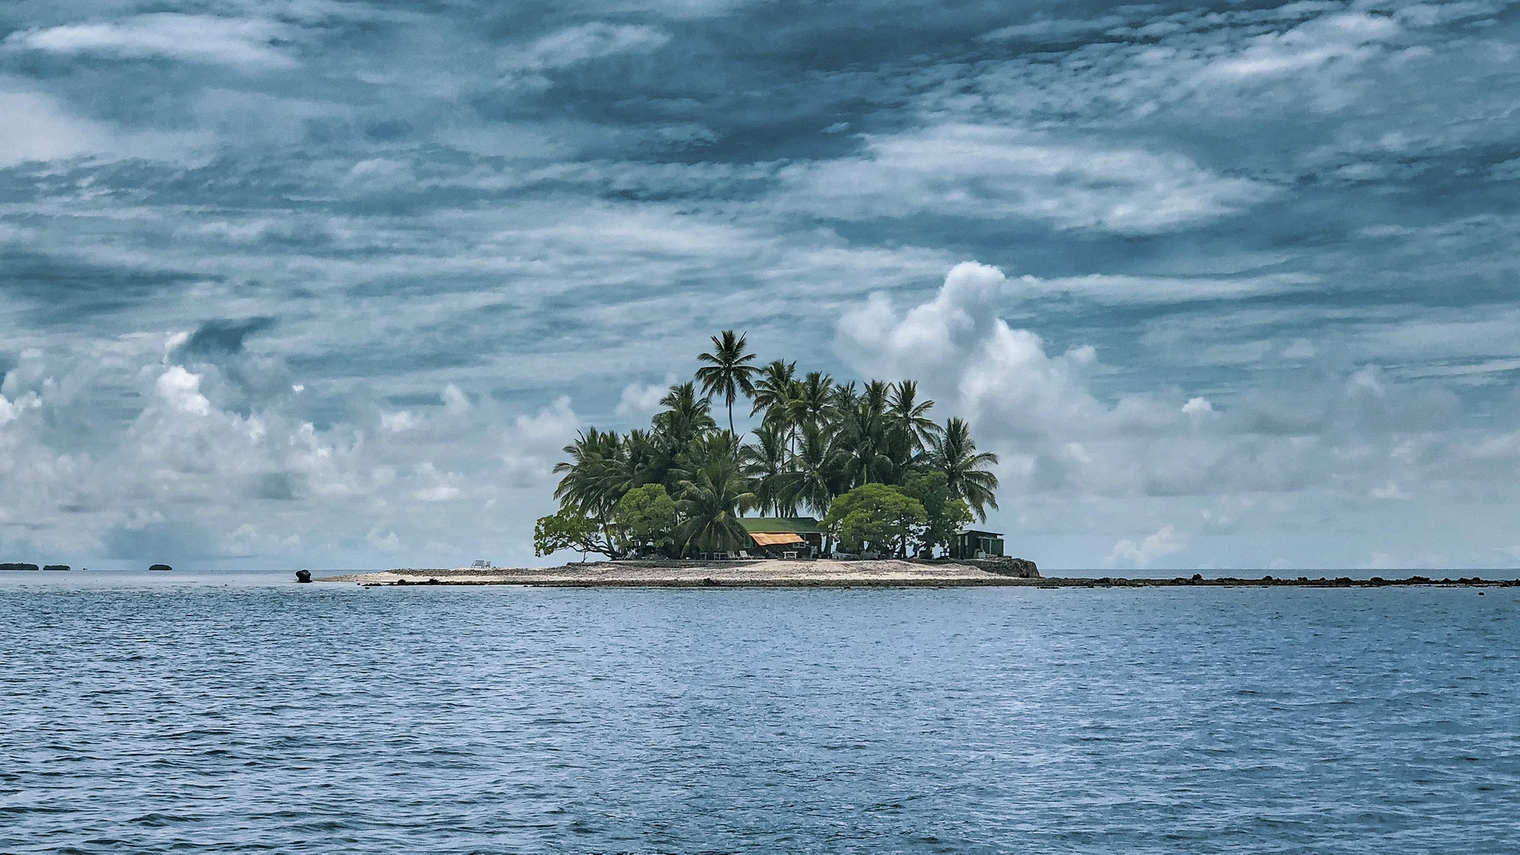 Even a South Pacific island costs less than a typical Aussie home